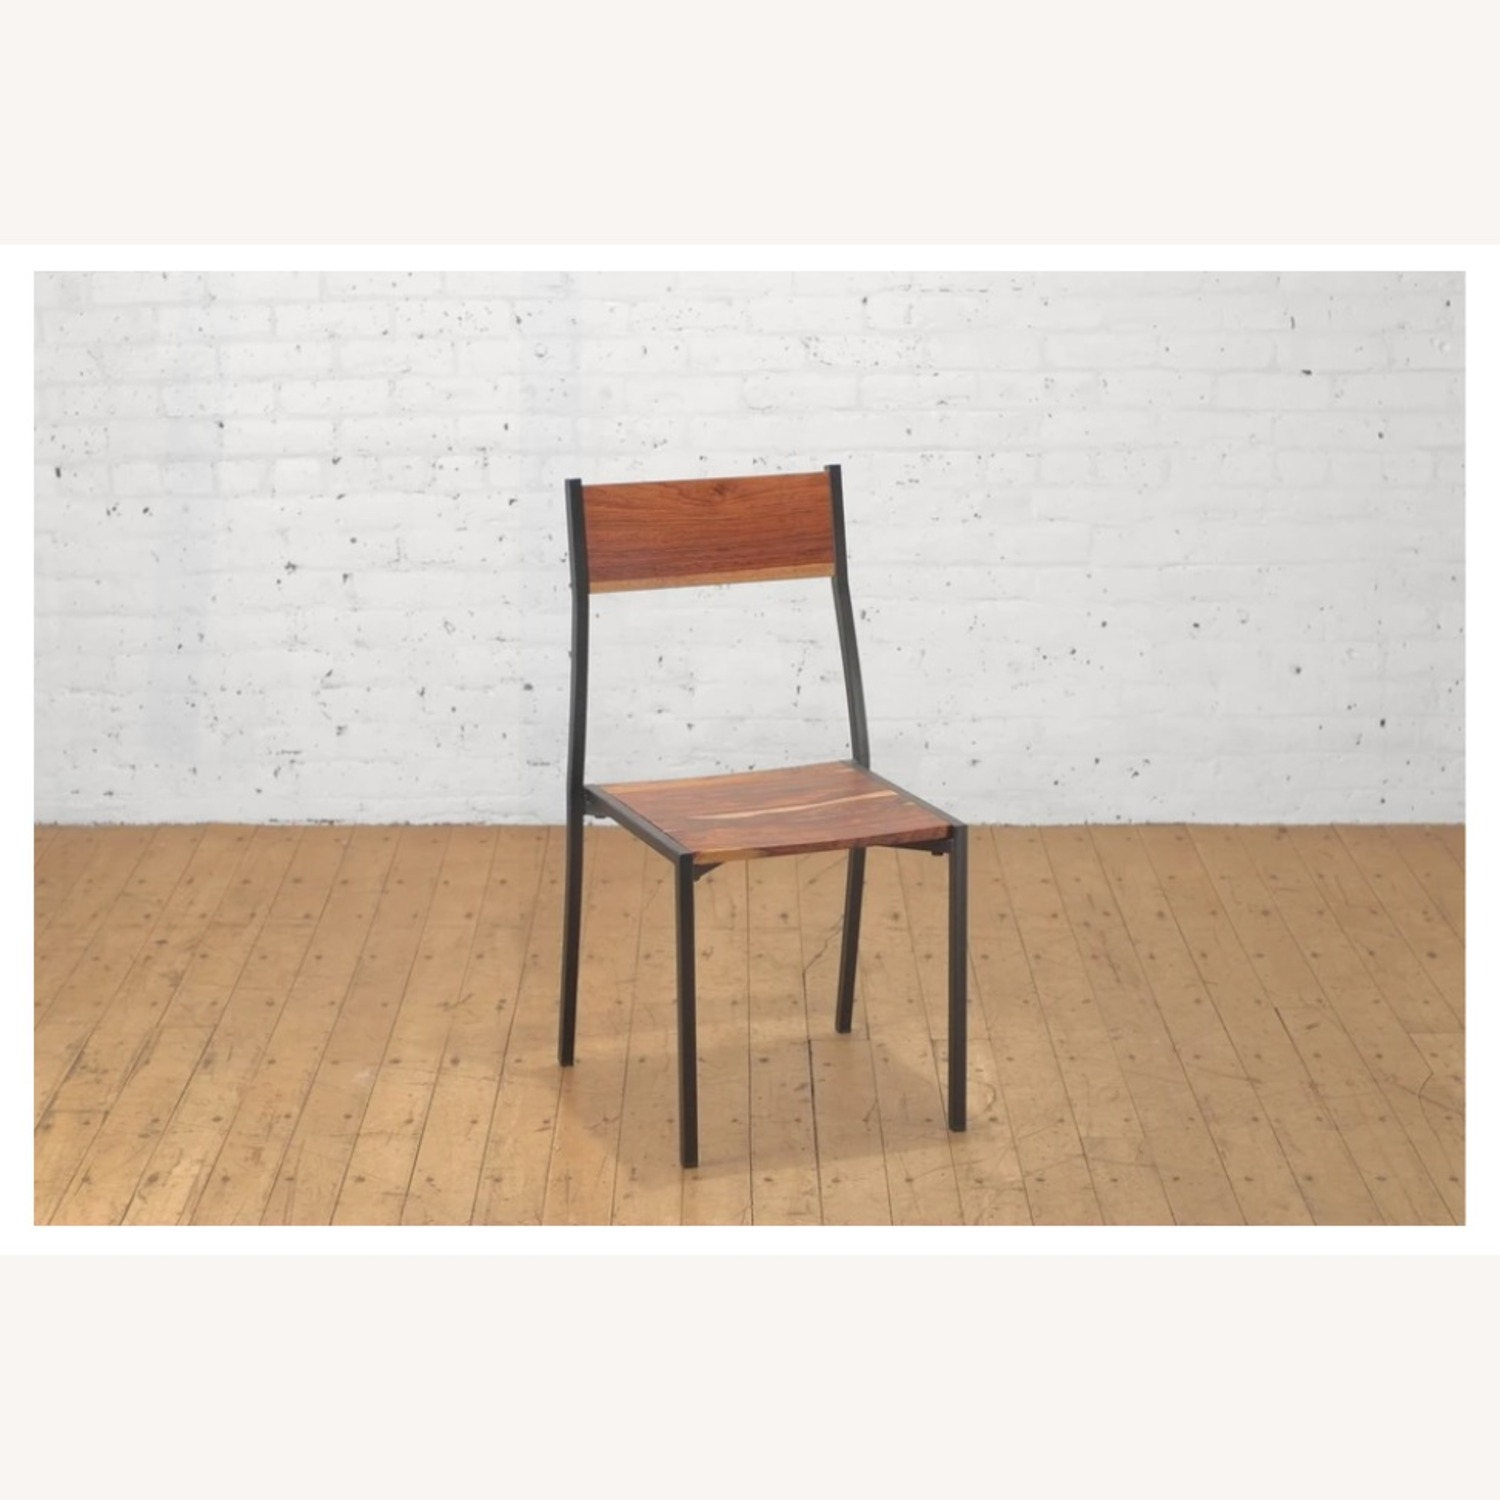 From the Source Oxidized Mango Dining Chairs - image-0